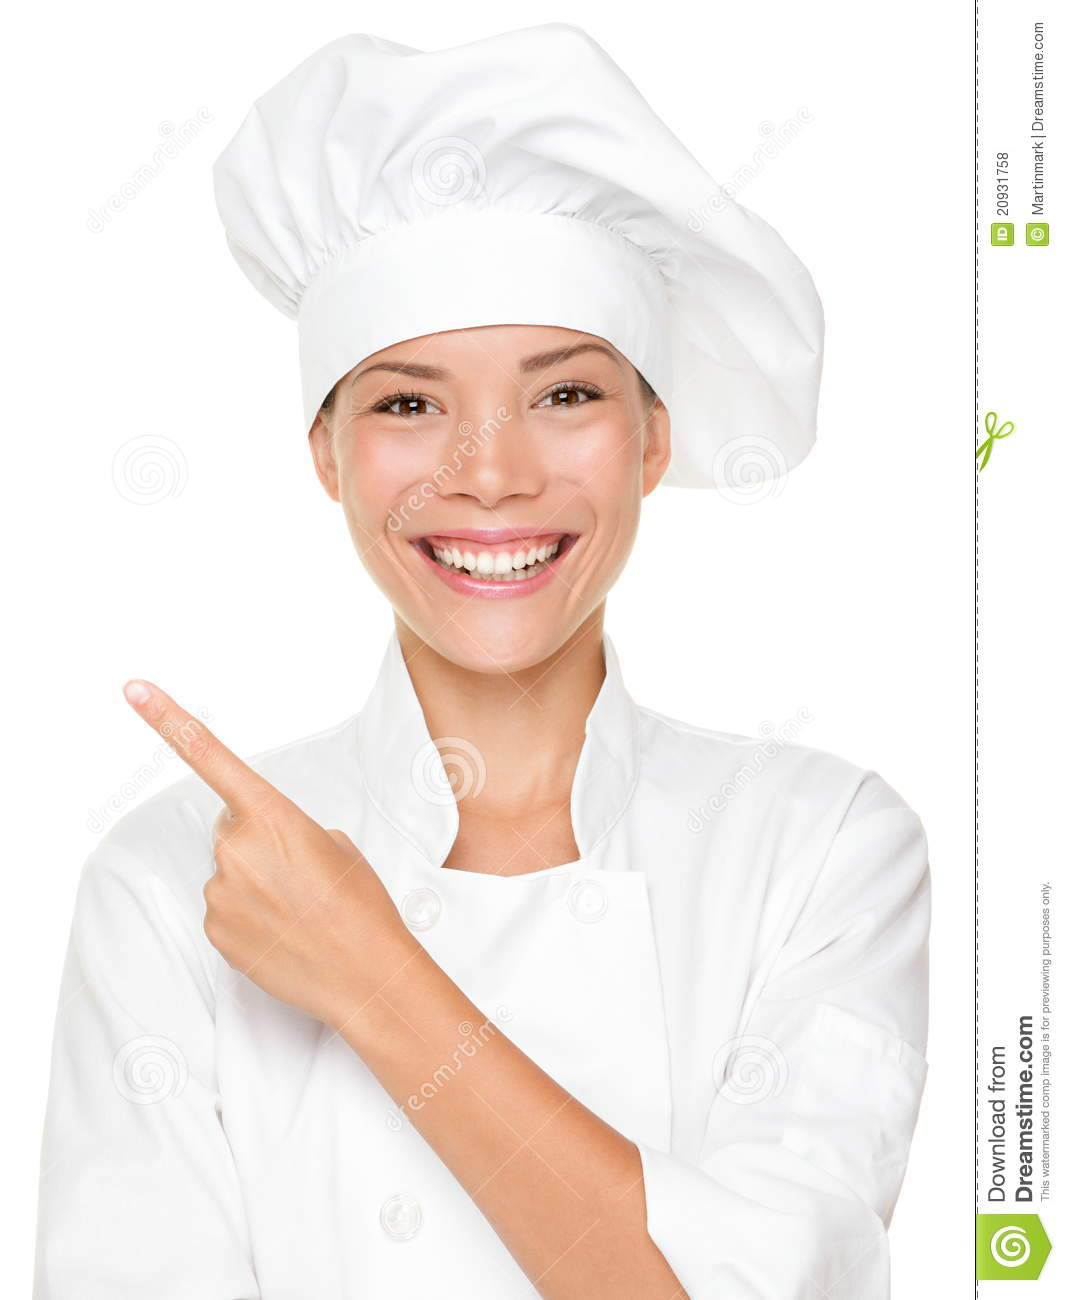 Woman chef pointing